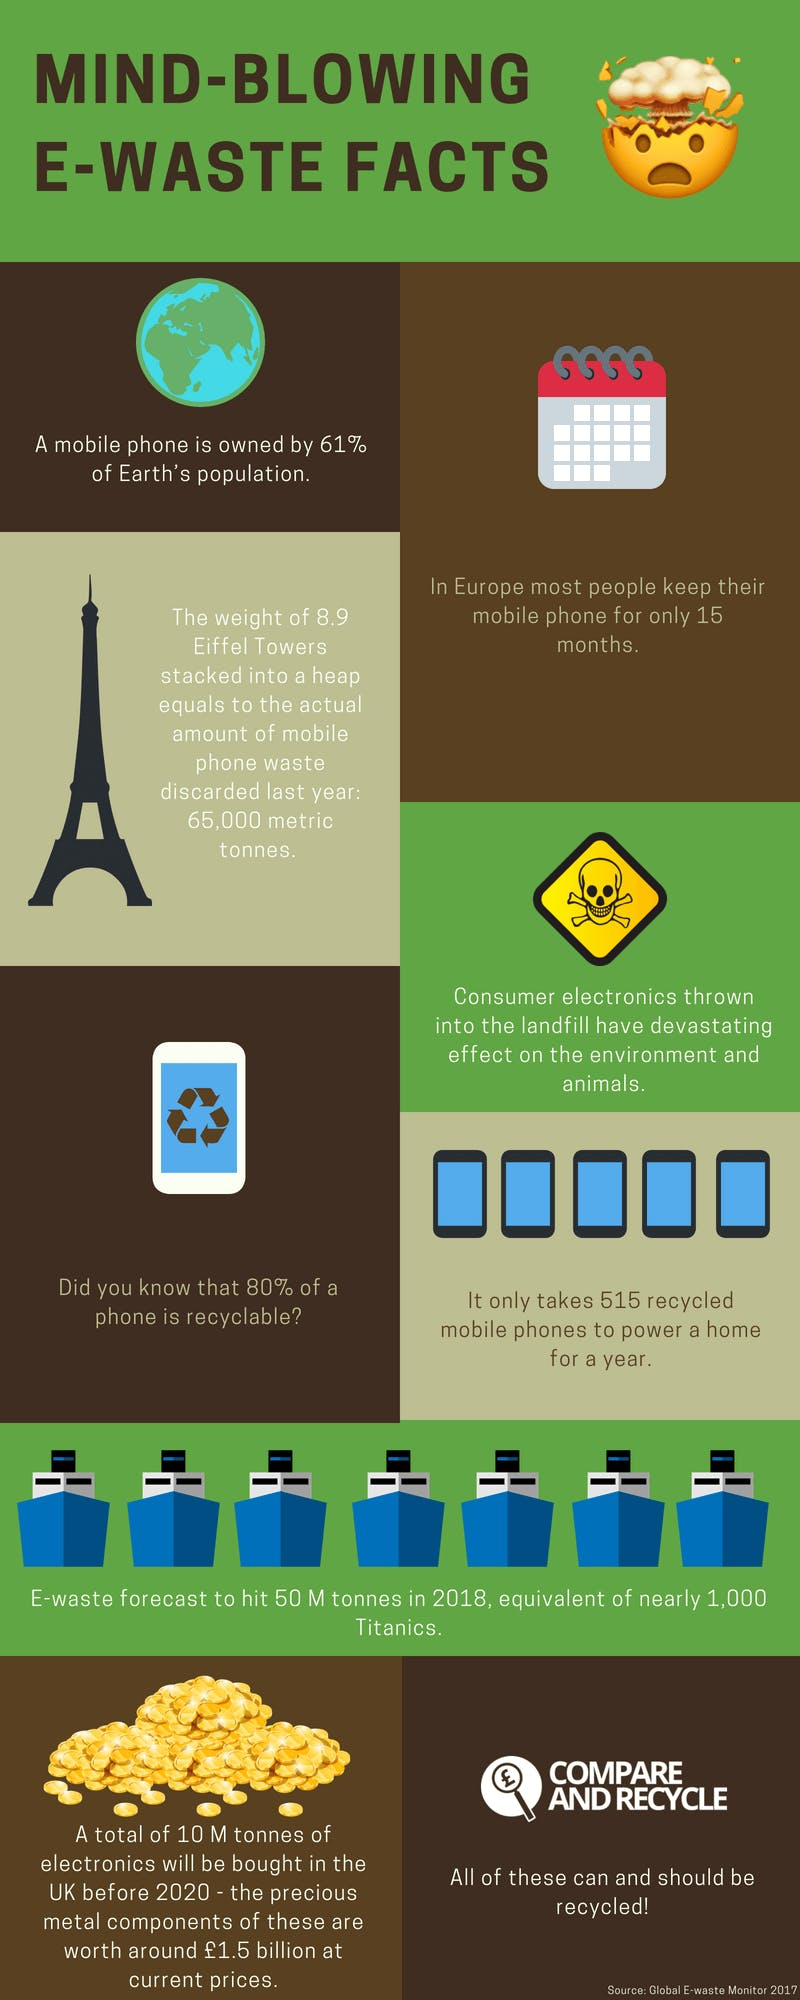 E-waste_factsedited_tinypng